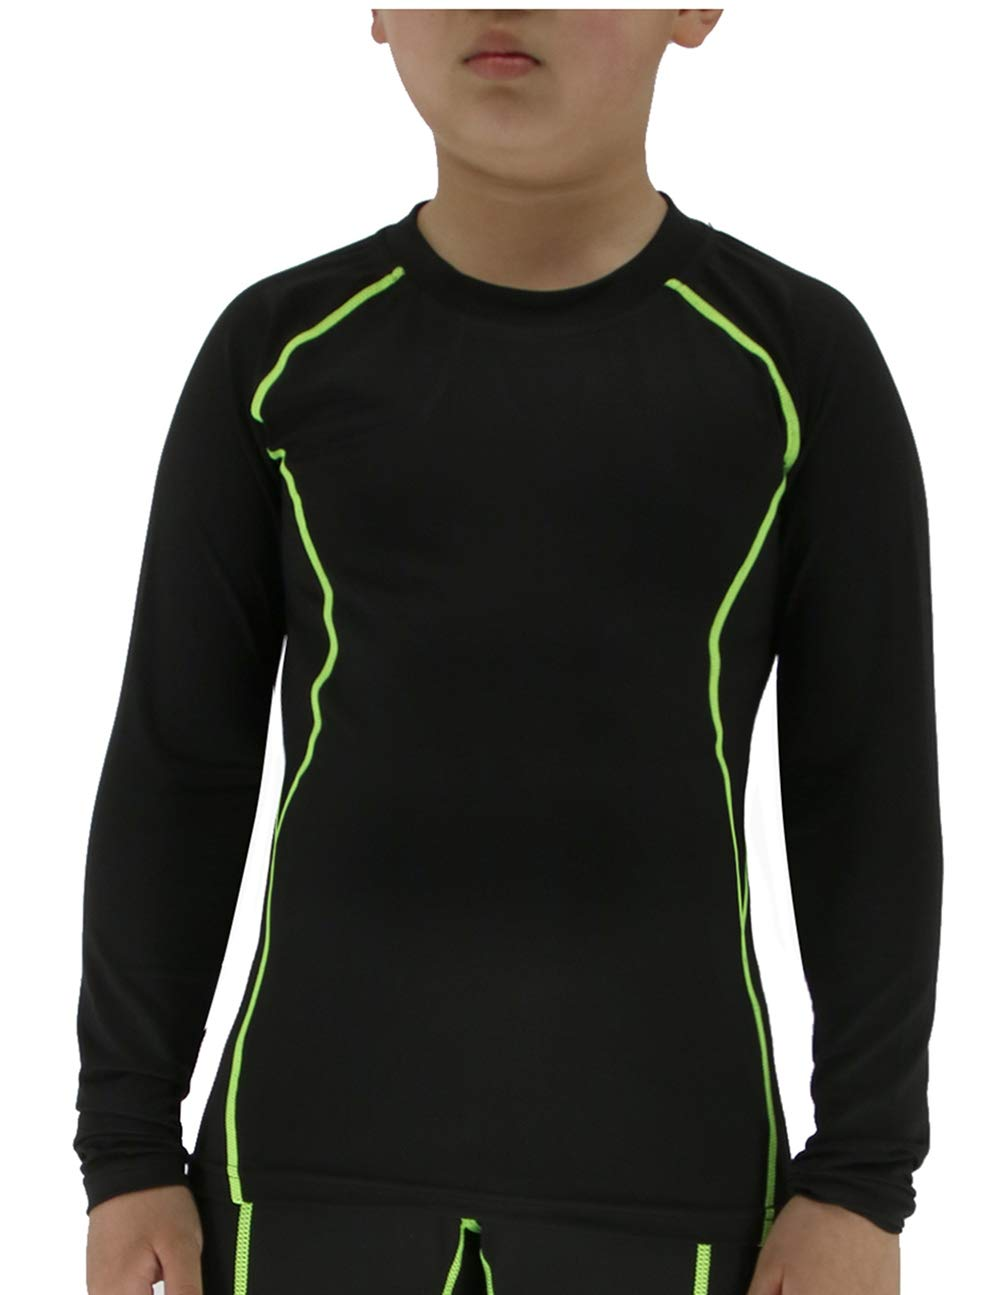 LANBAOSI Boys& Girls Long Sleeve Compression Soccer Practice Shirts SL299-T